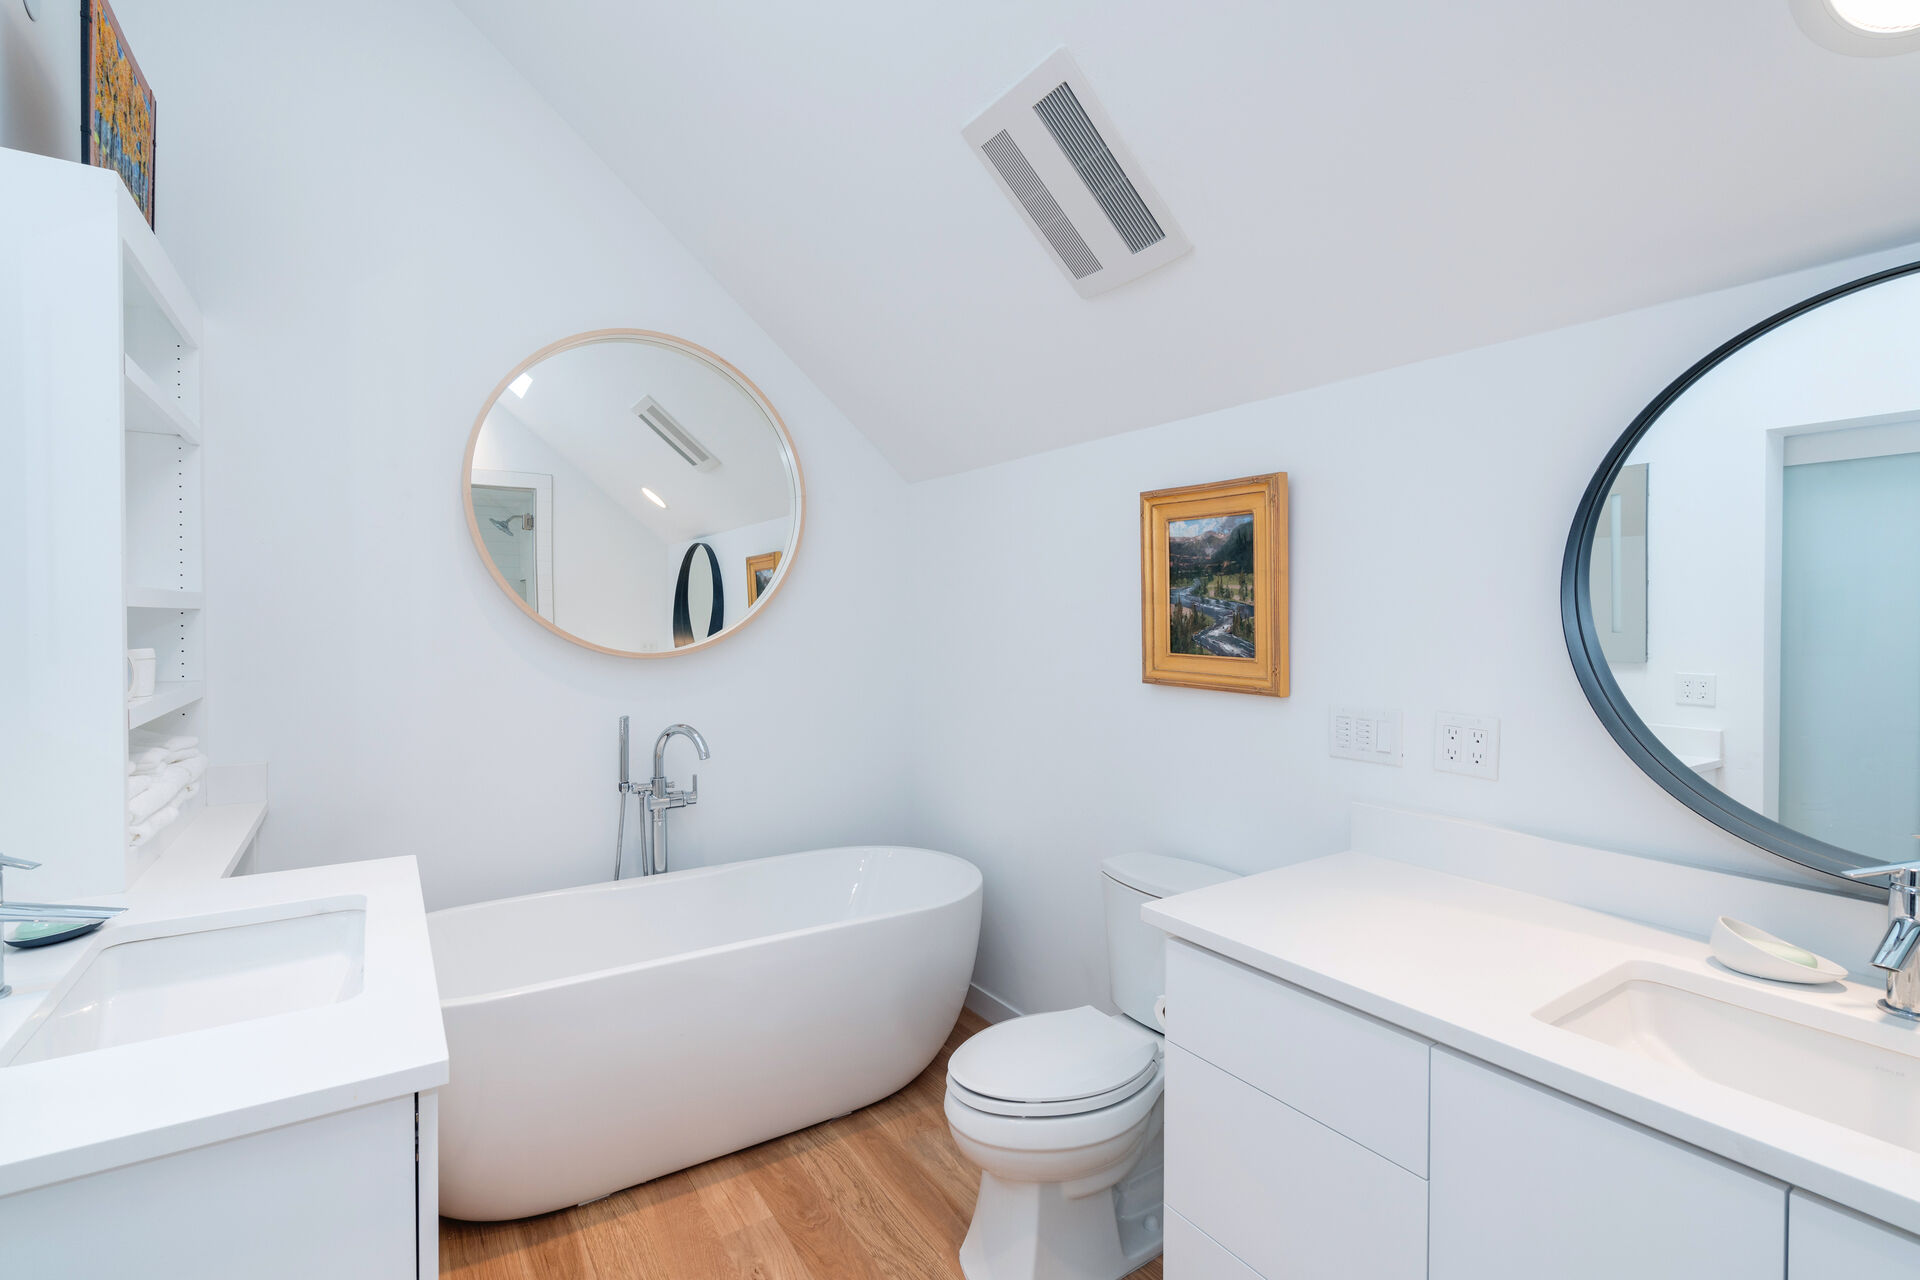 Bathroom with Soaking Tub and Vanity with Round Mirror